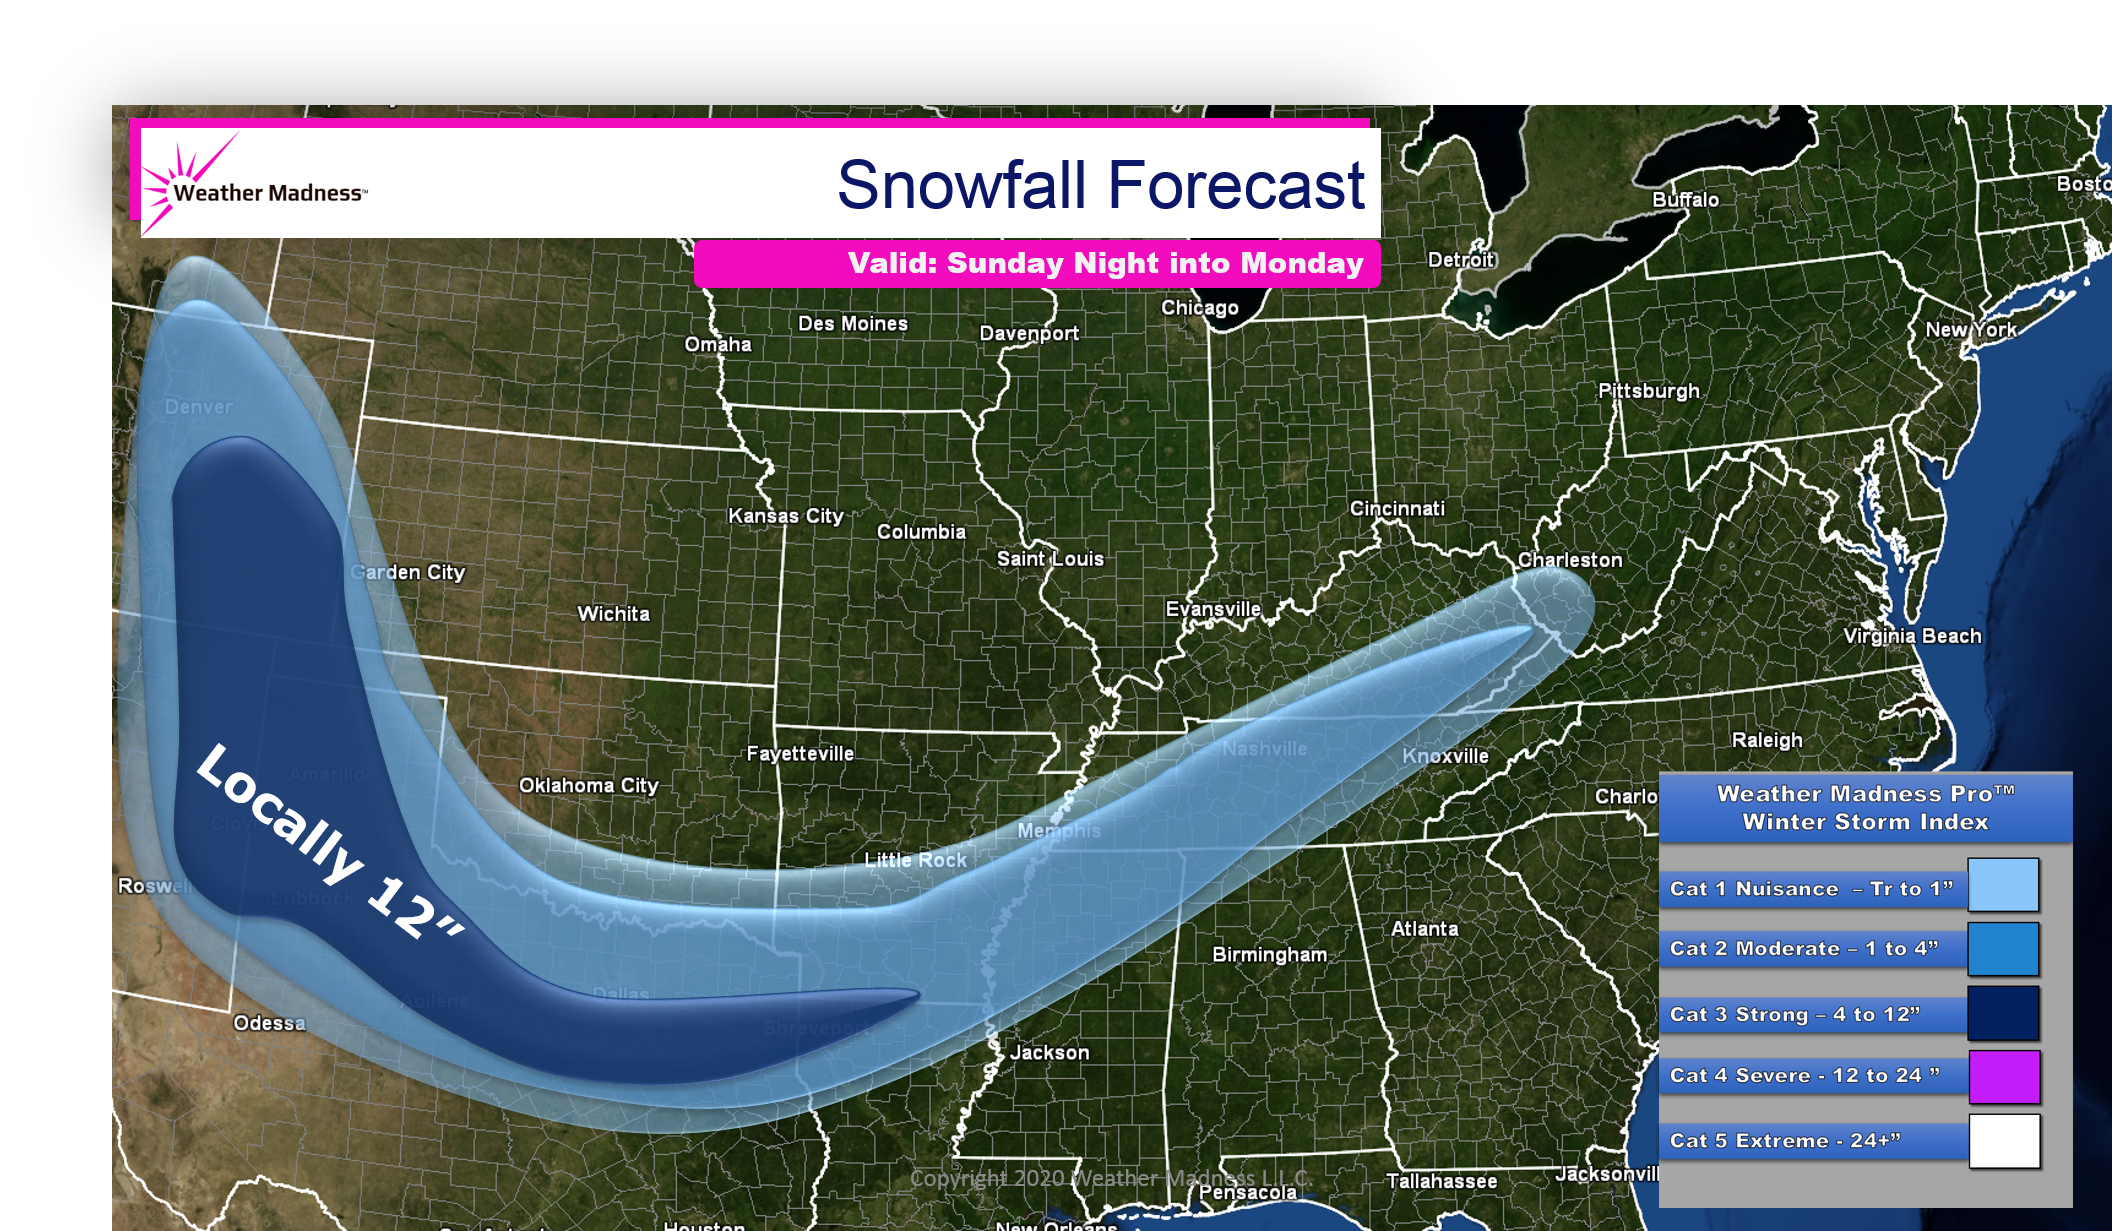 Texas and Louisiana Snow Event could Reach a Winter Index 3.